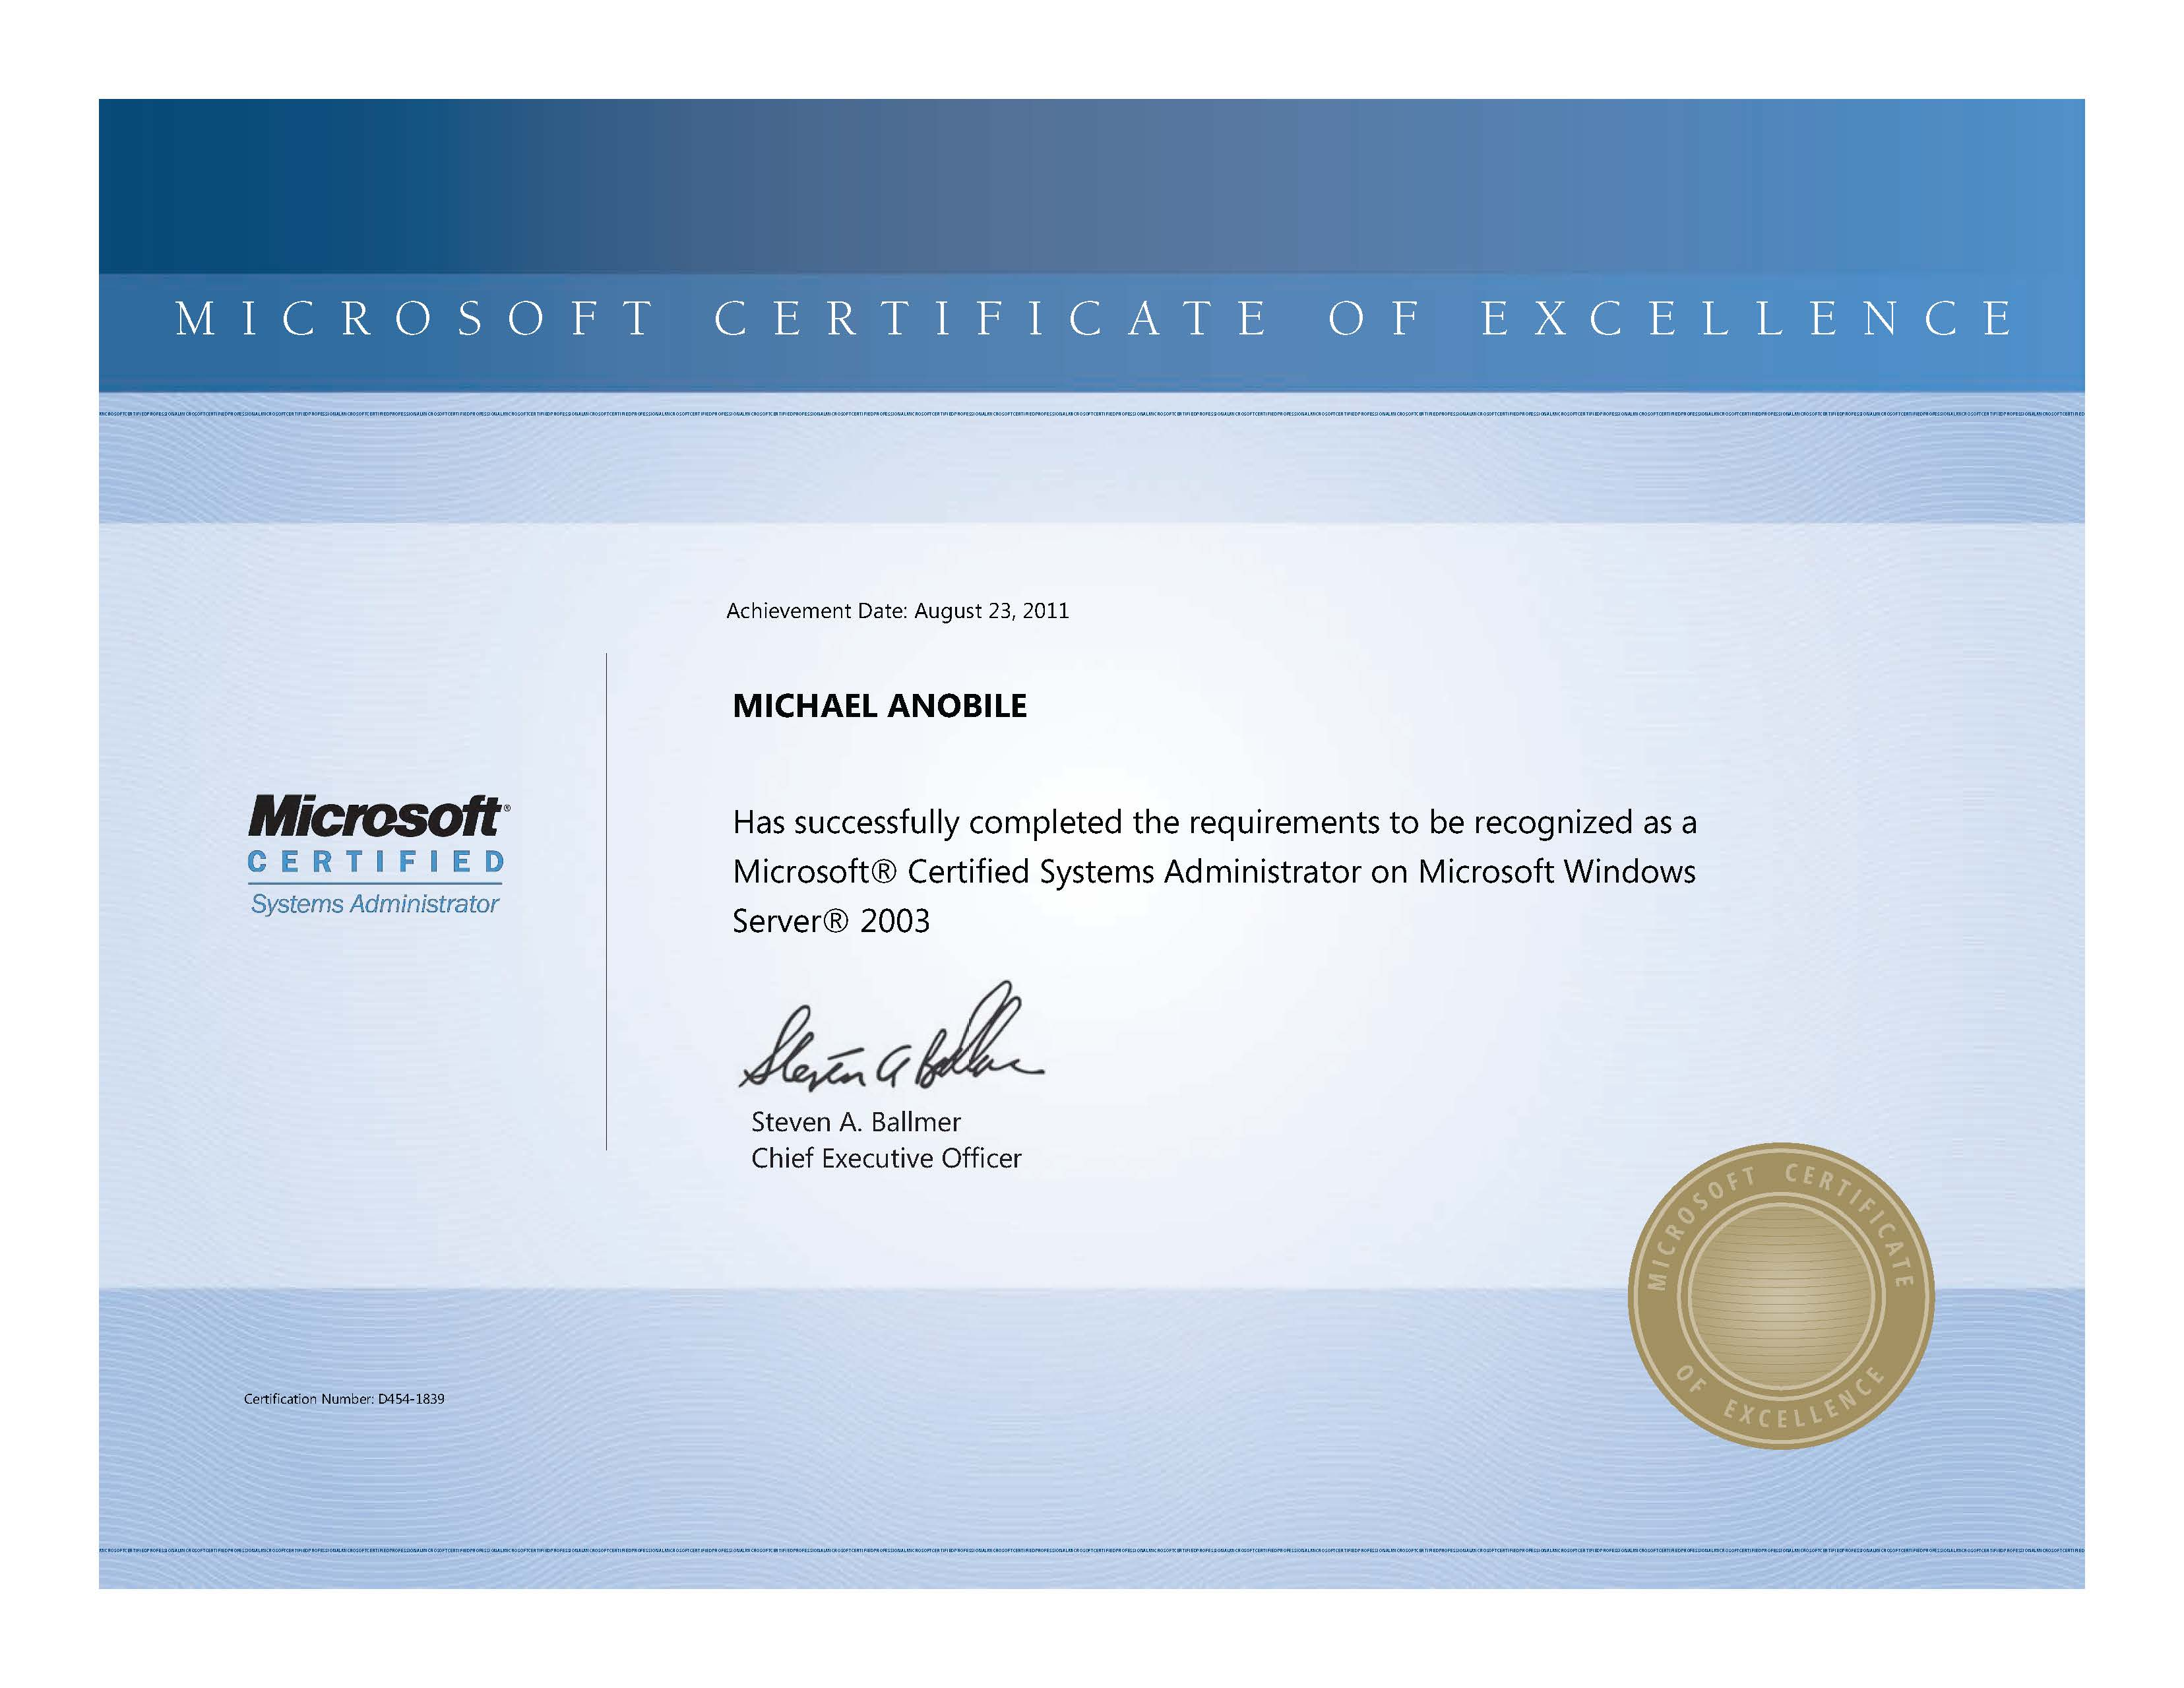 Mcsa server 2003 mikes blog october 13 2012 3311 2559 certifications 1betcityfo Image collections